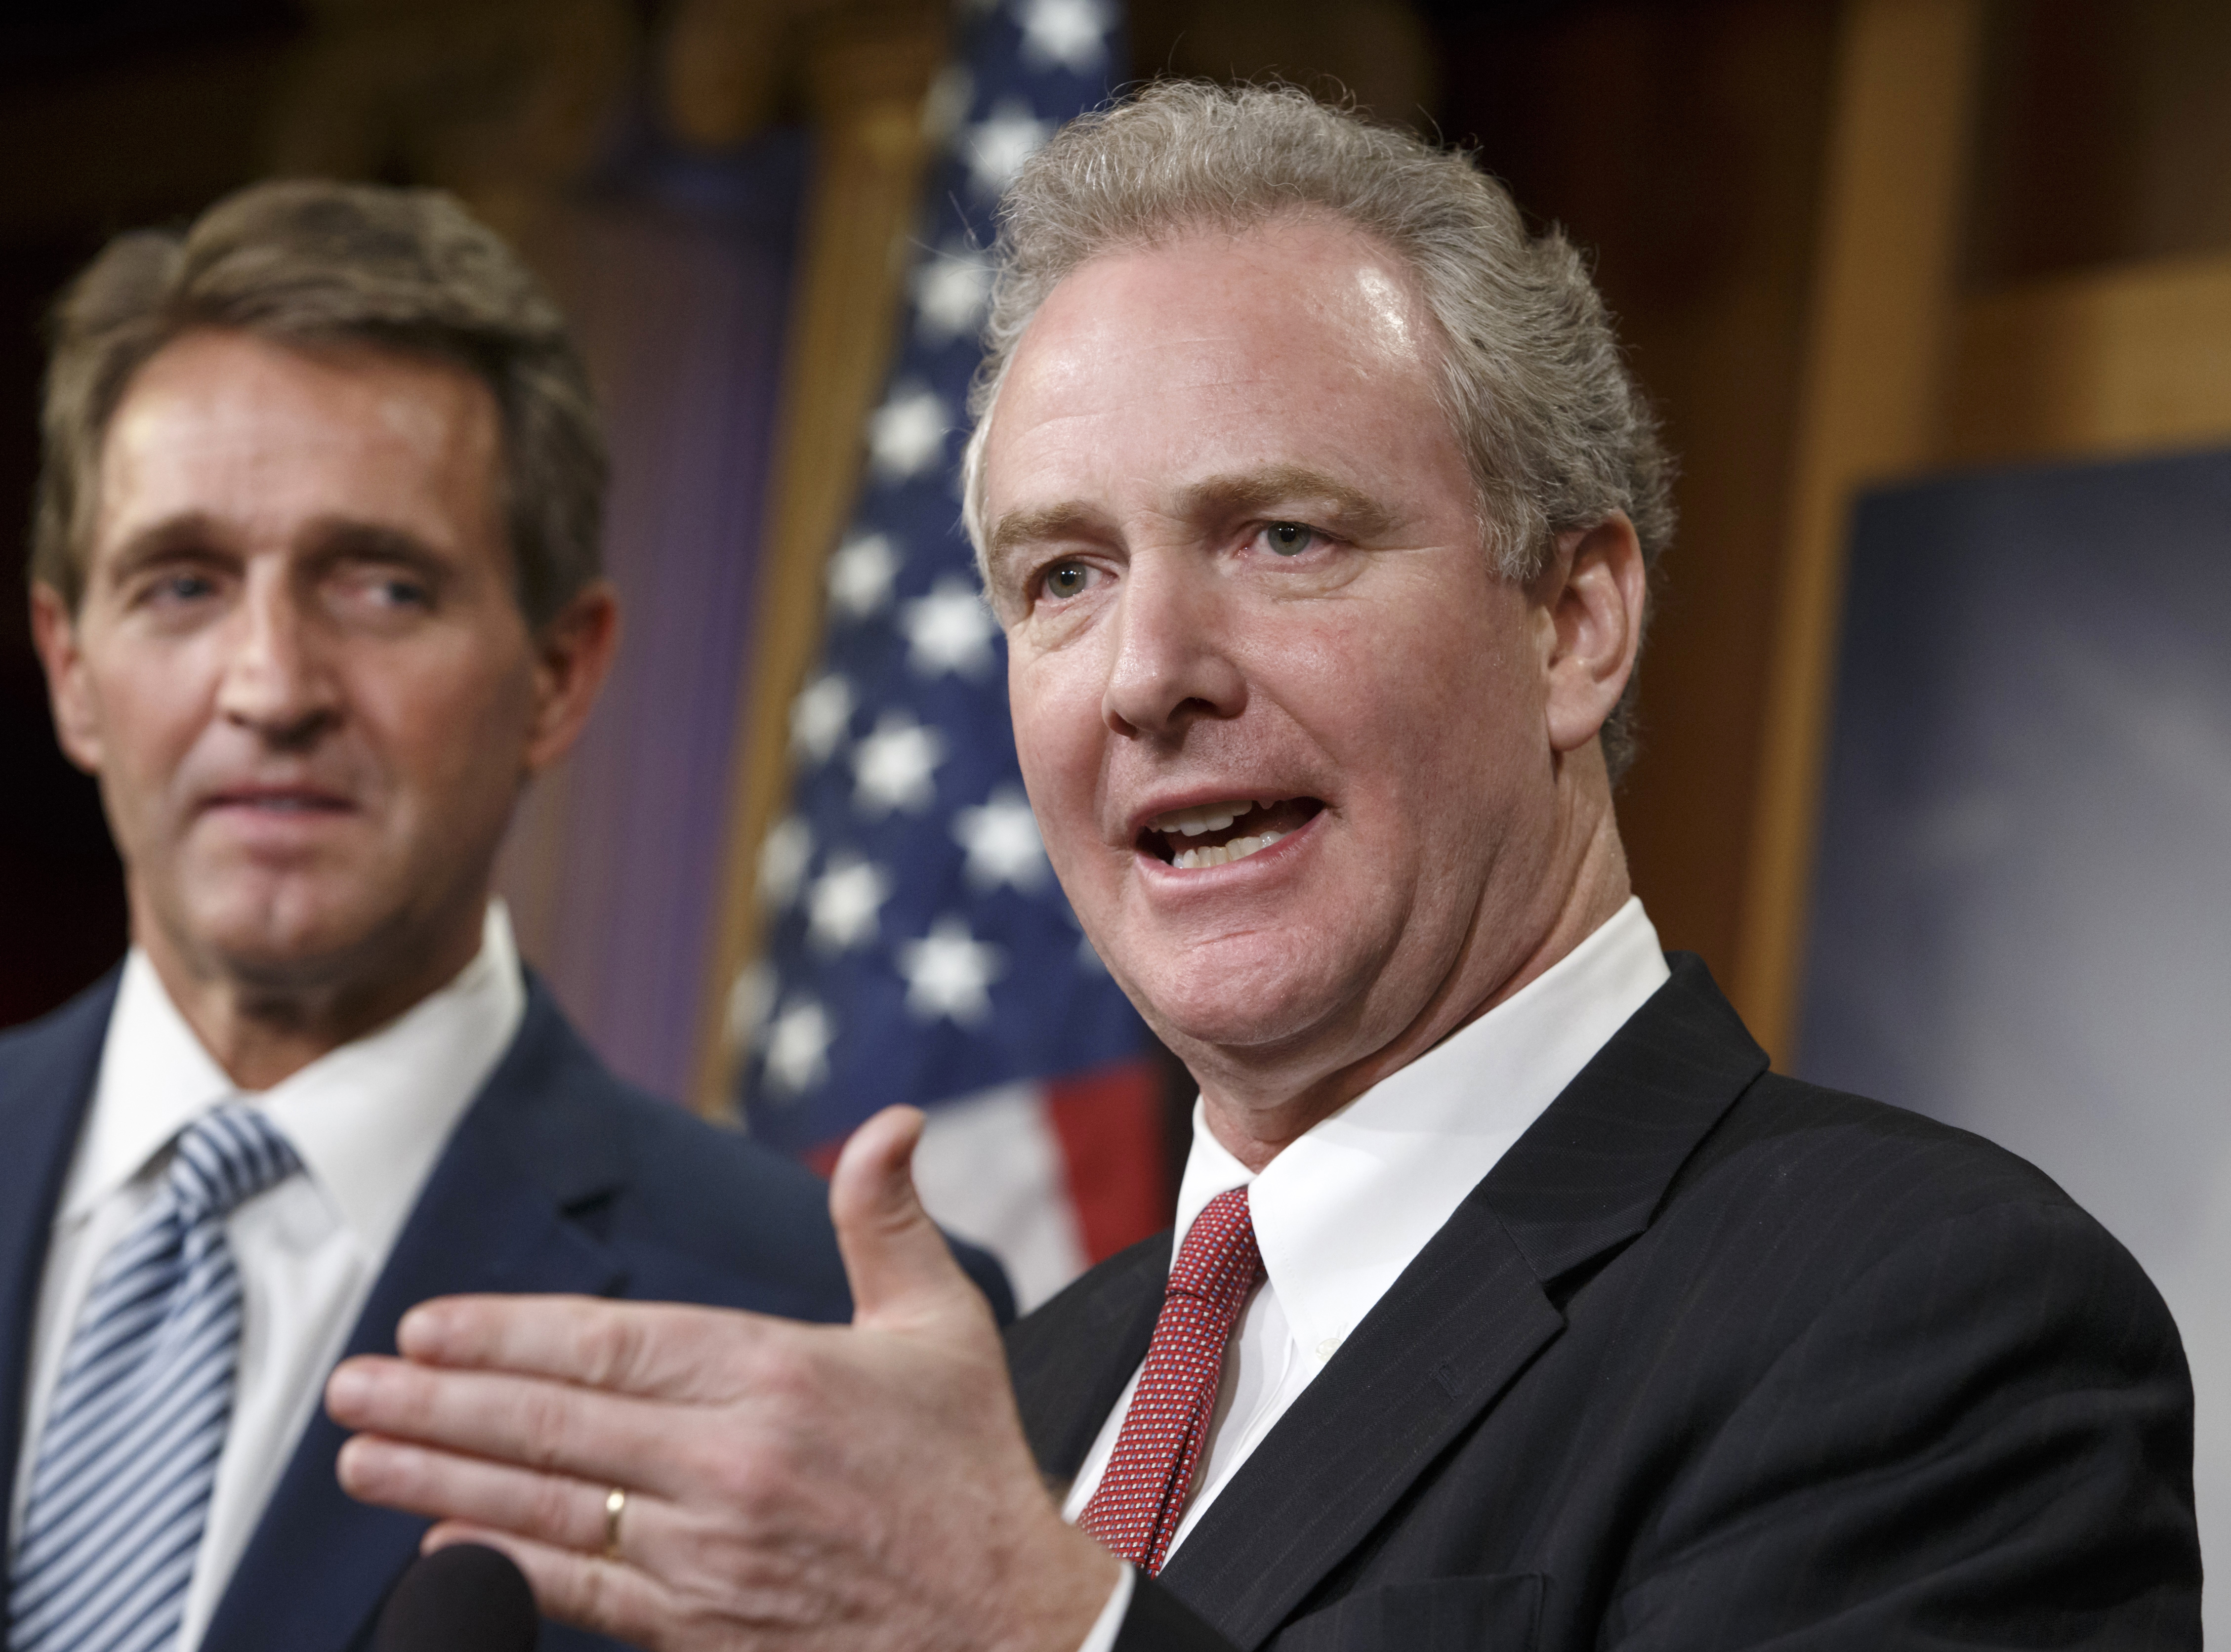 Poll shows Van Hollen holds apparent lead over Edwards in Senate race